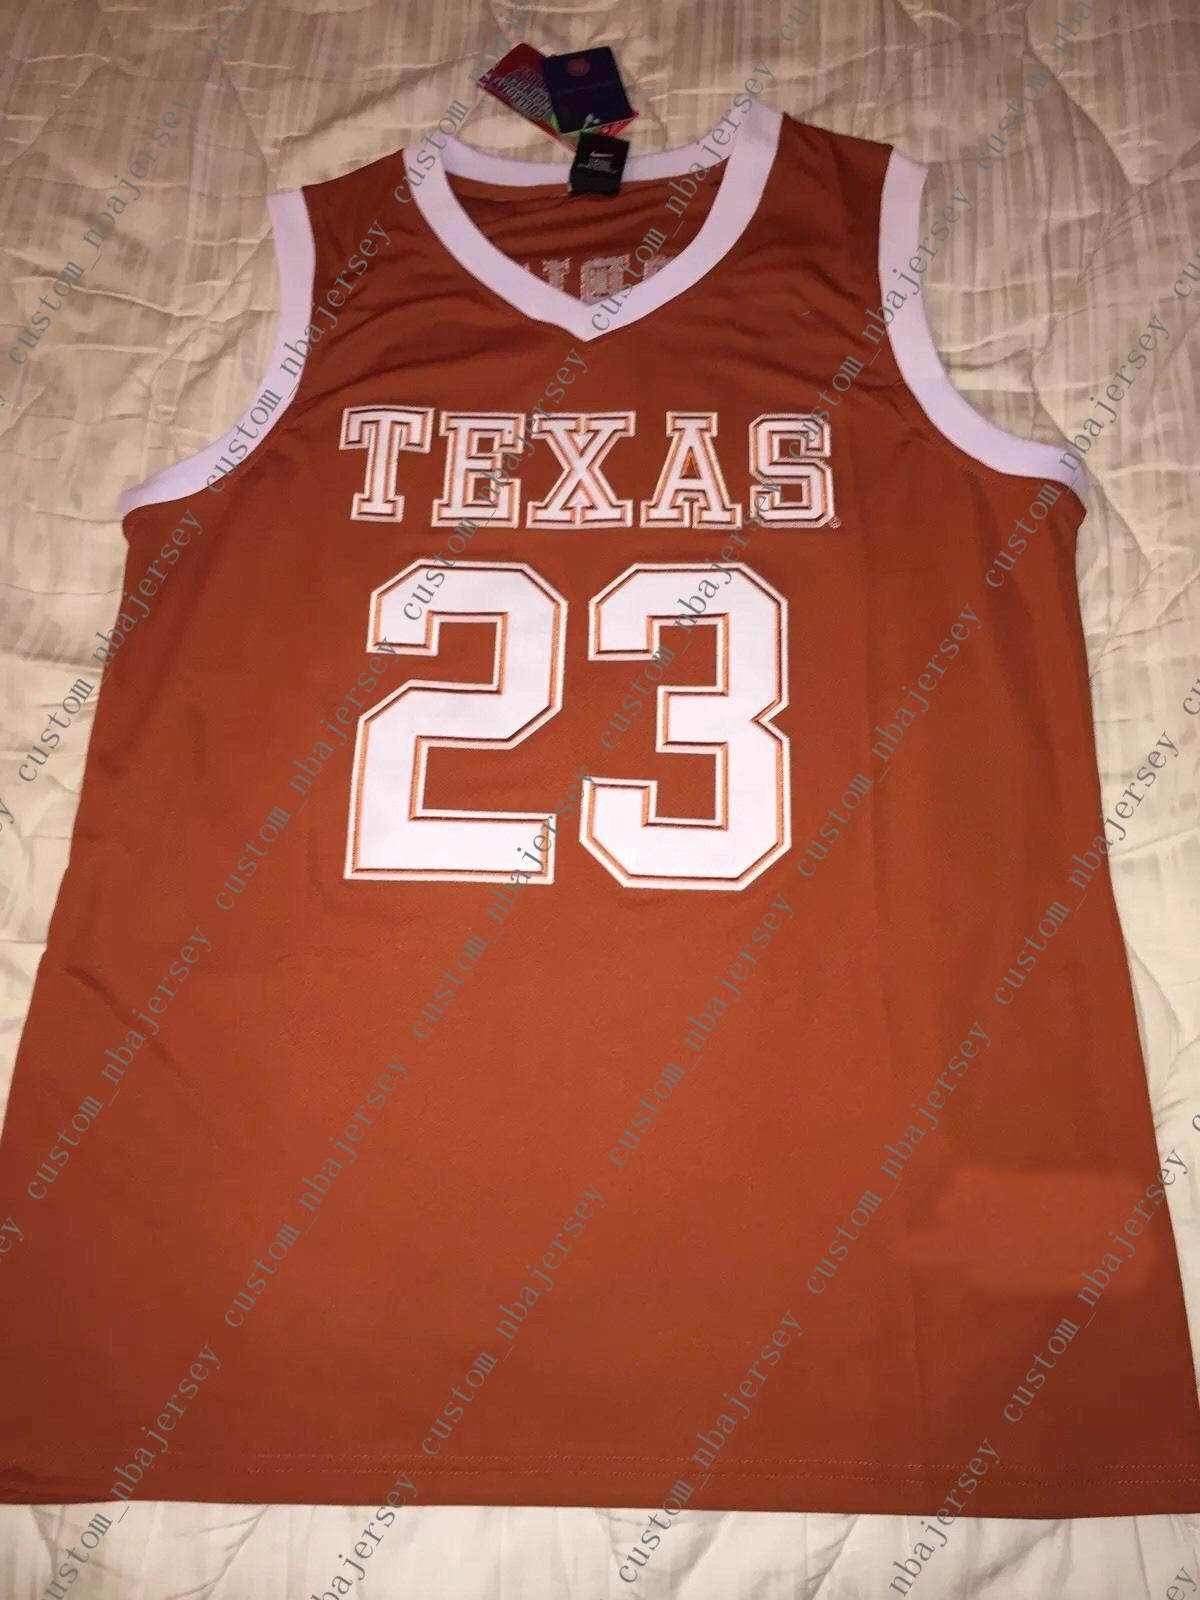 a3c91e961 2019 Cheap Custom Vintage Lamarcus Aldridge Texas Longhorns NCAA Basketball  Jersey Stitch Customize Any Number Name MEN WOMEN YOUTH XS 5XL From ...